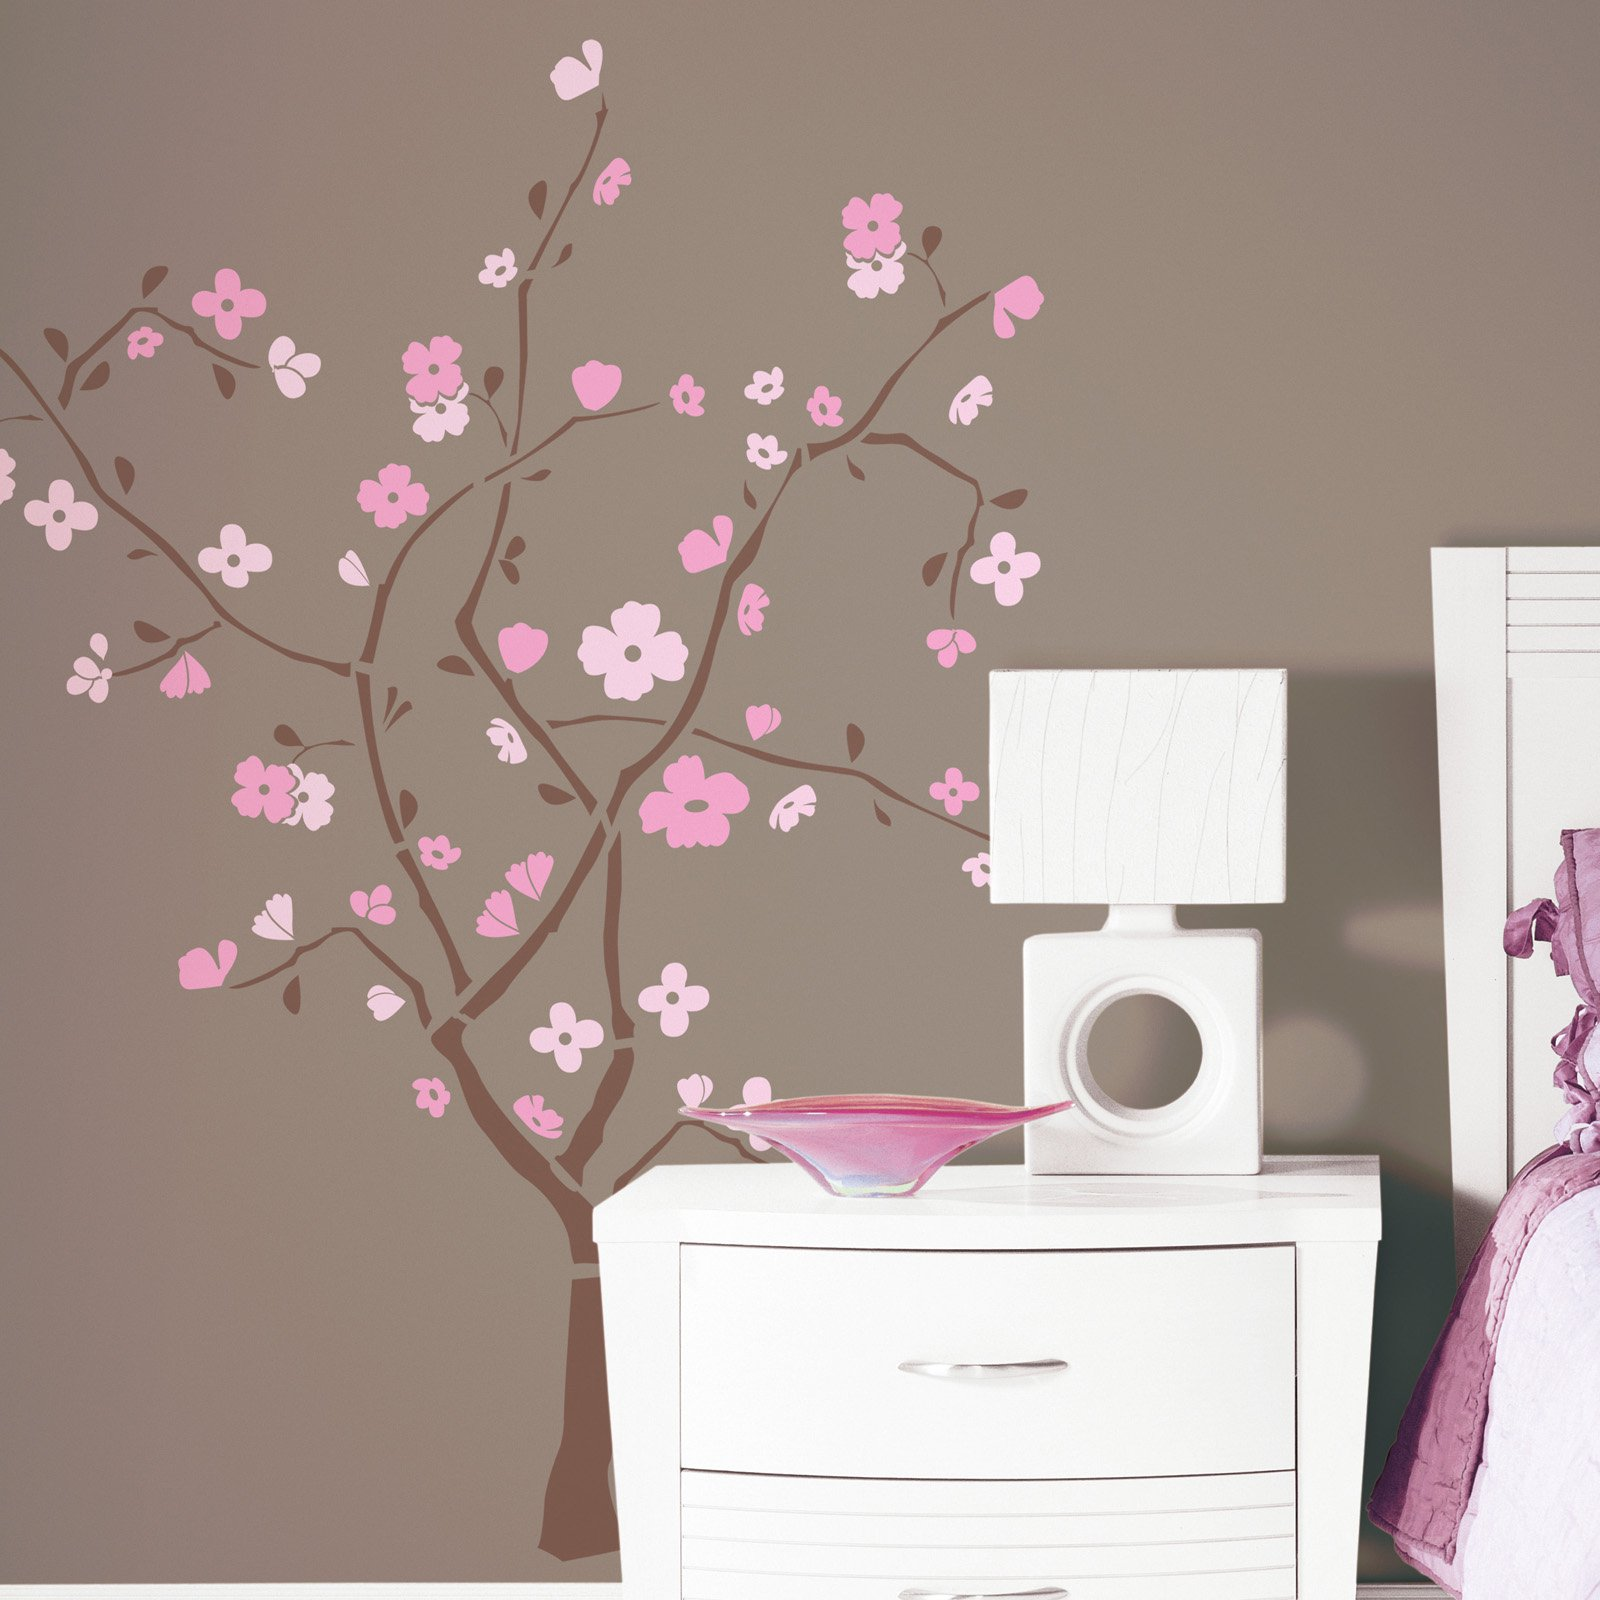 Spring Blossom Peel and Stick Giant Wall Decal - 40W x 60H in.